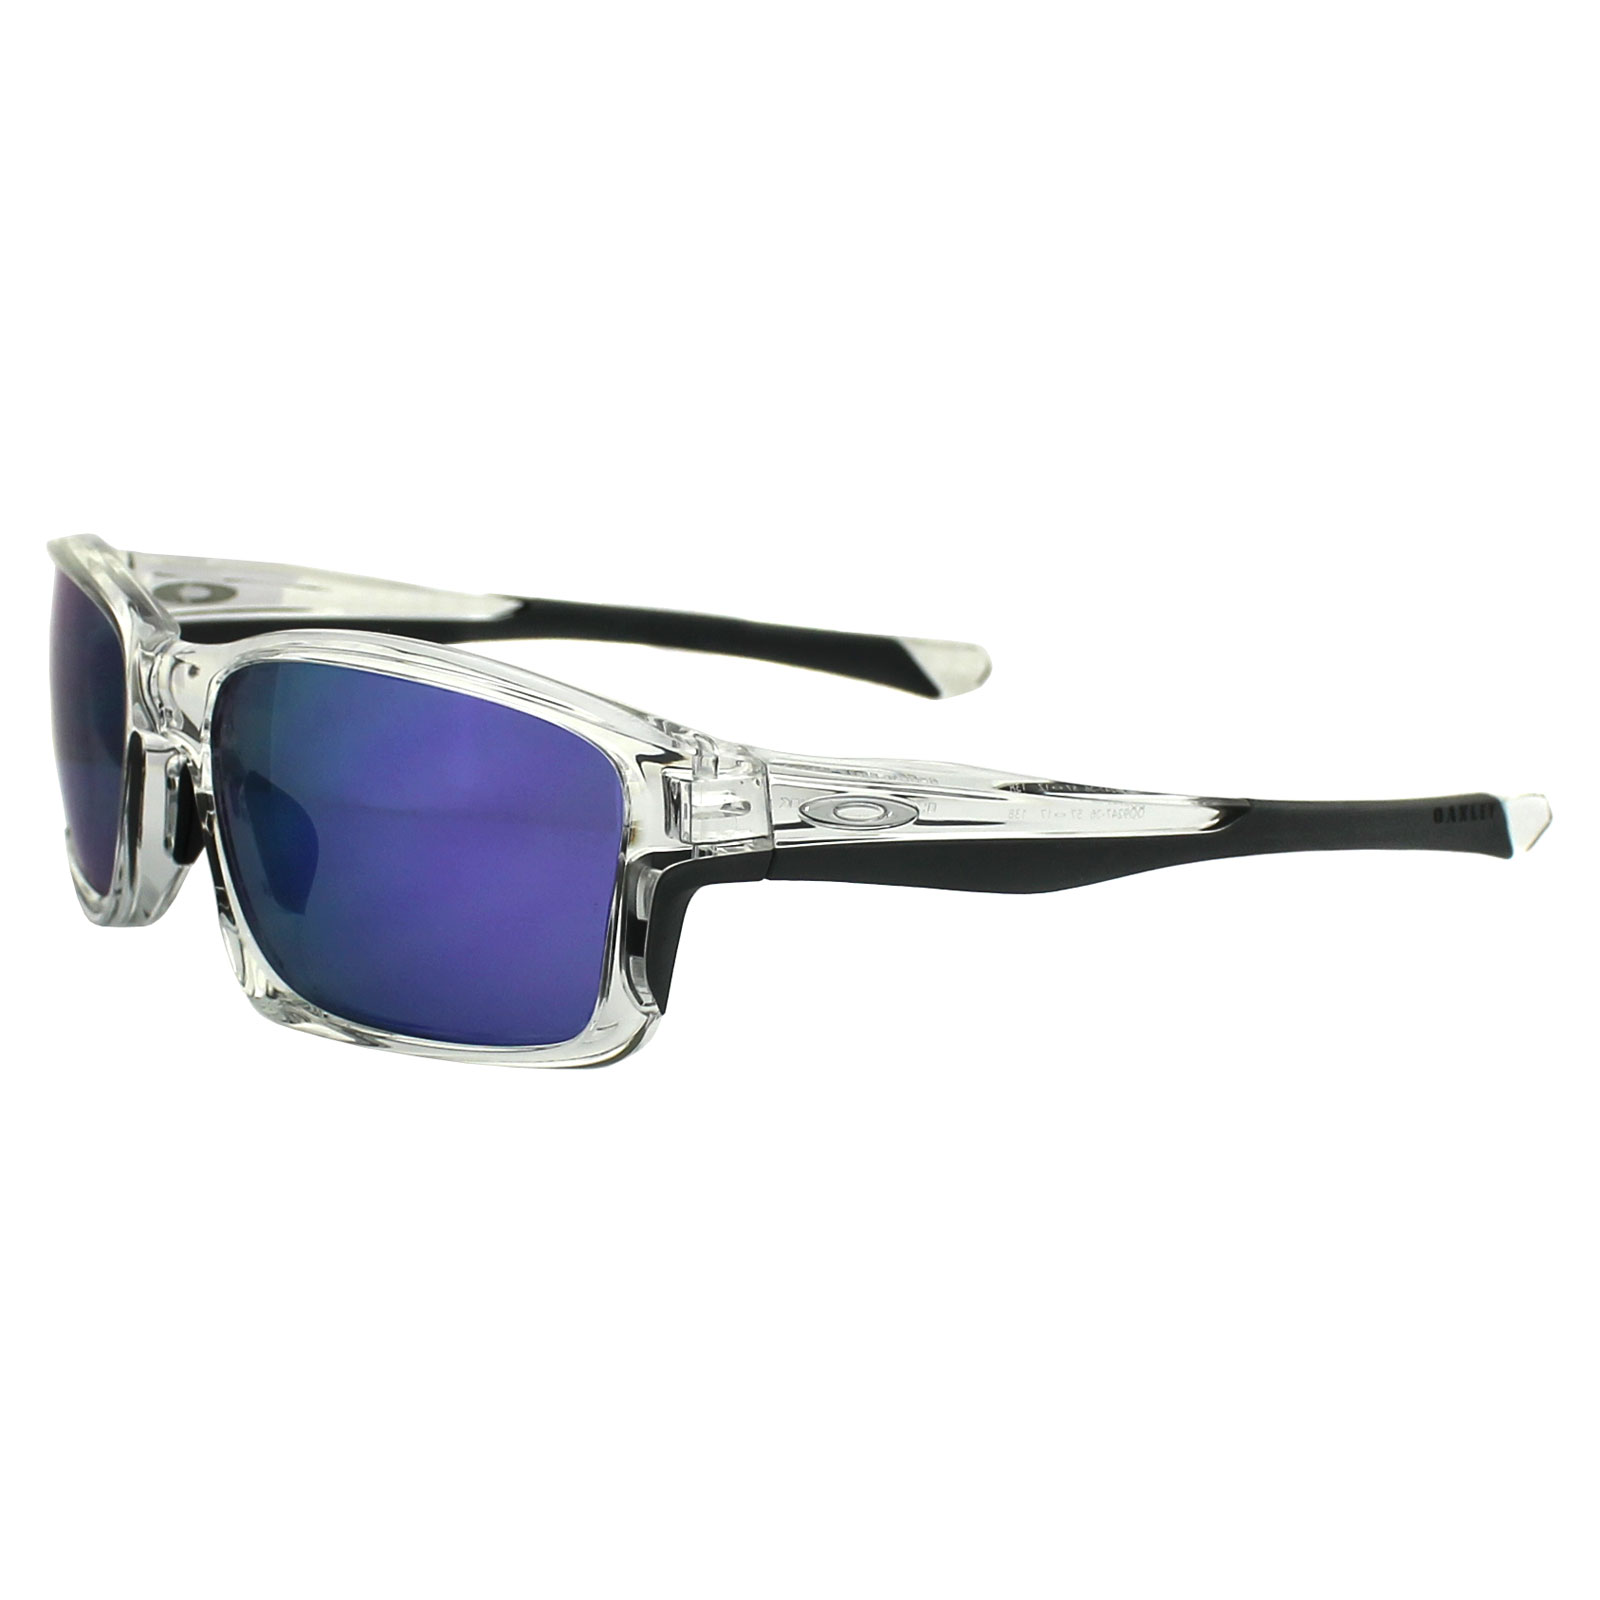 How Much Does It Cost To Get Prescription Oakley Sunglasses - Shabooms